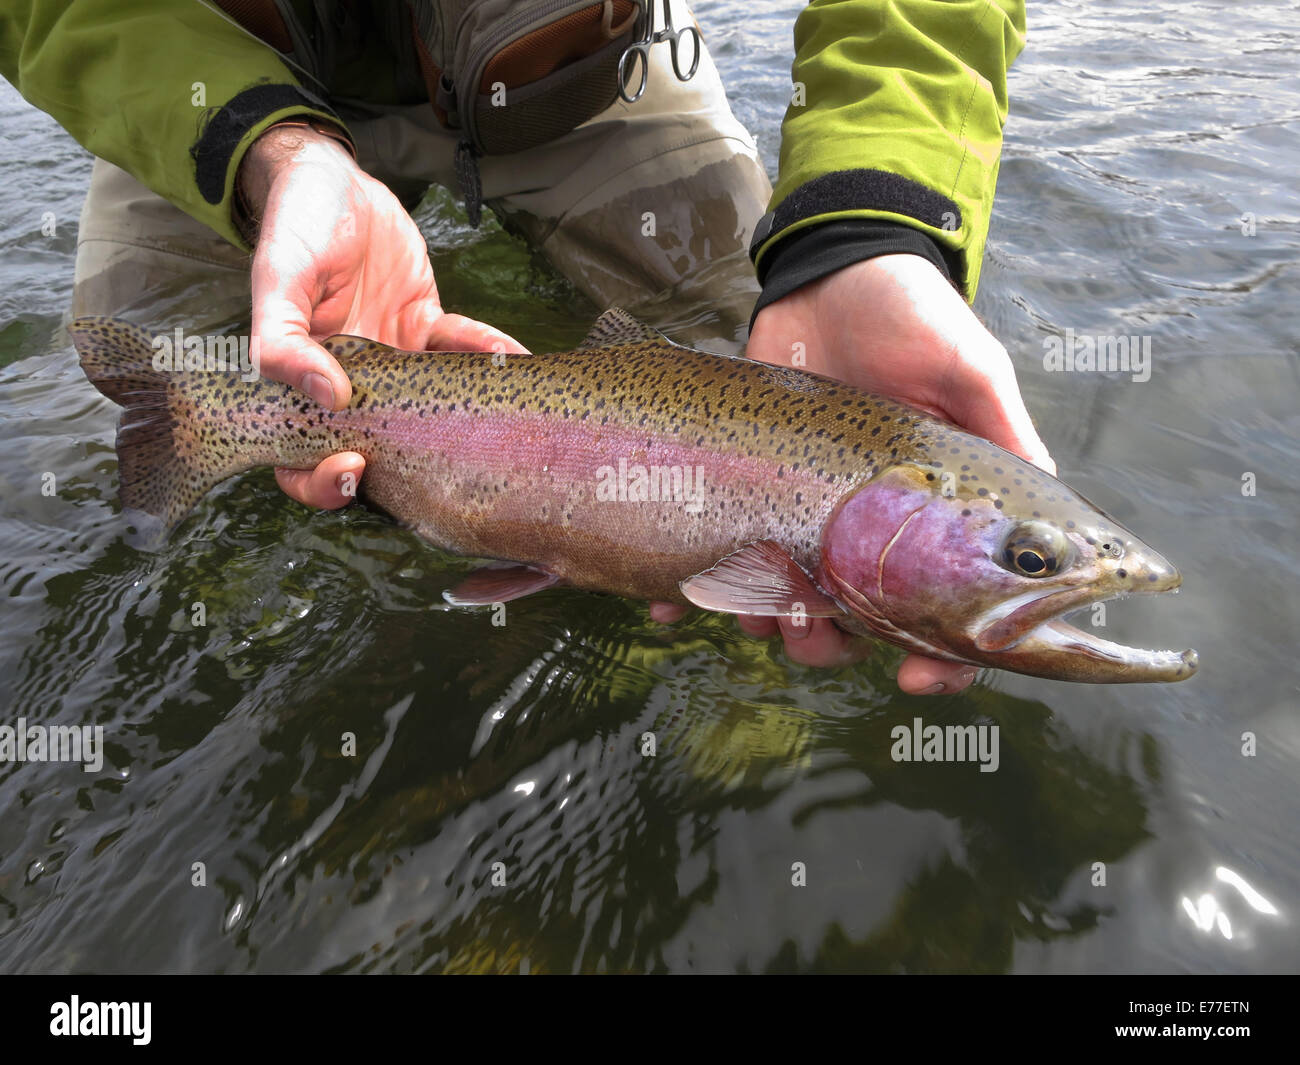 Fly fisherman holding rainbow trout that was caught in the North Platte River in Wyoming, USA. - Stock Image